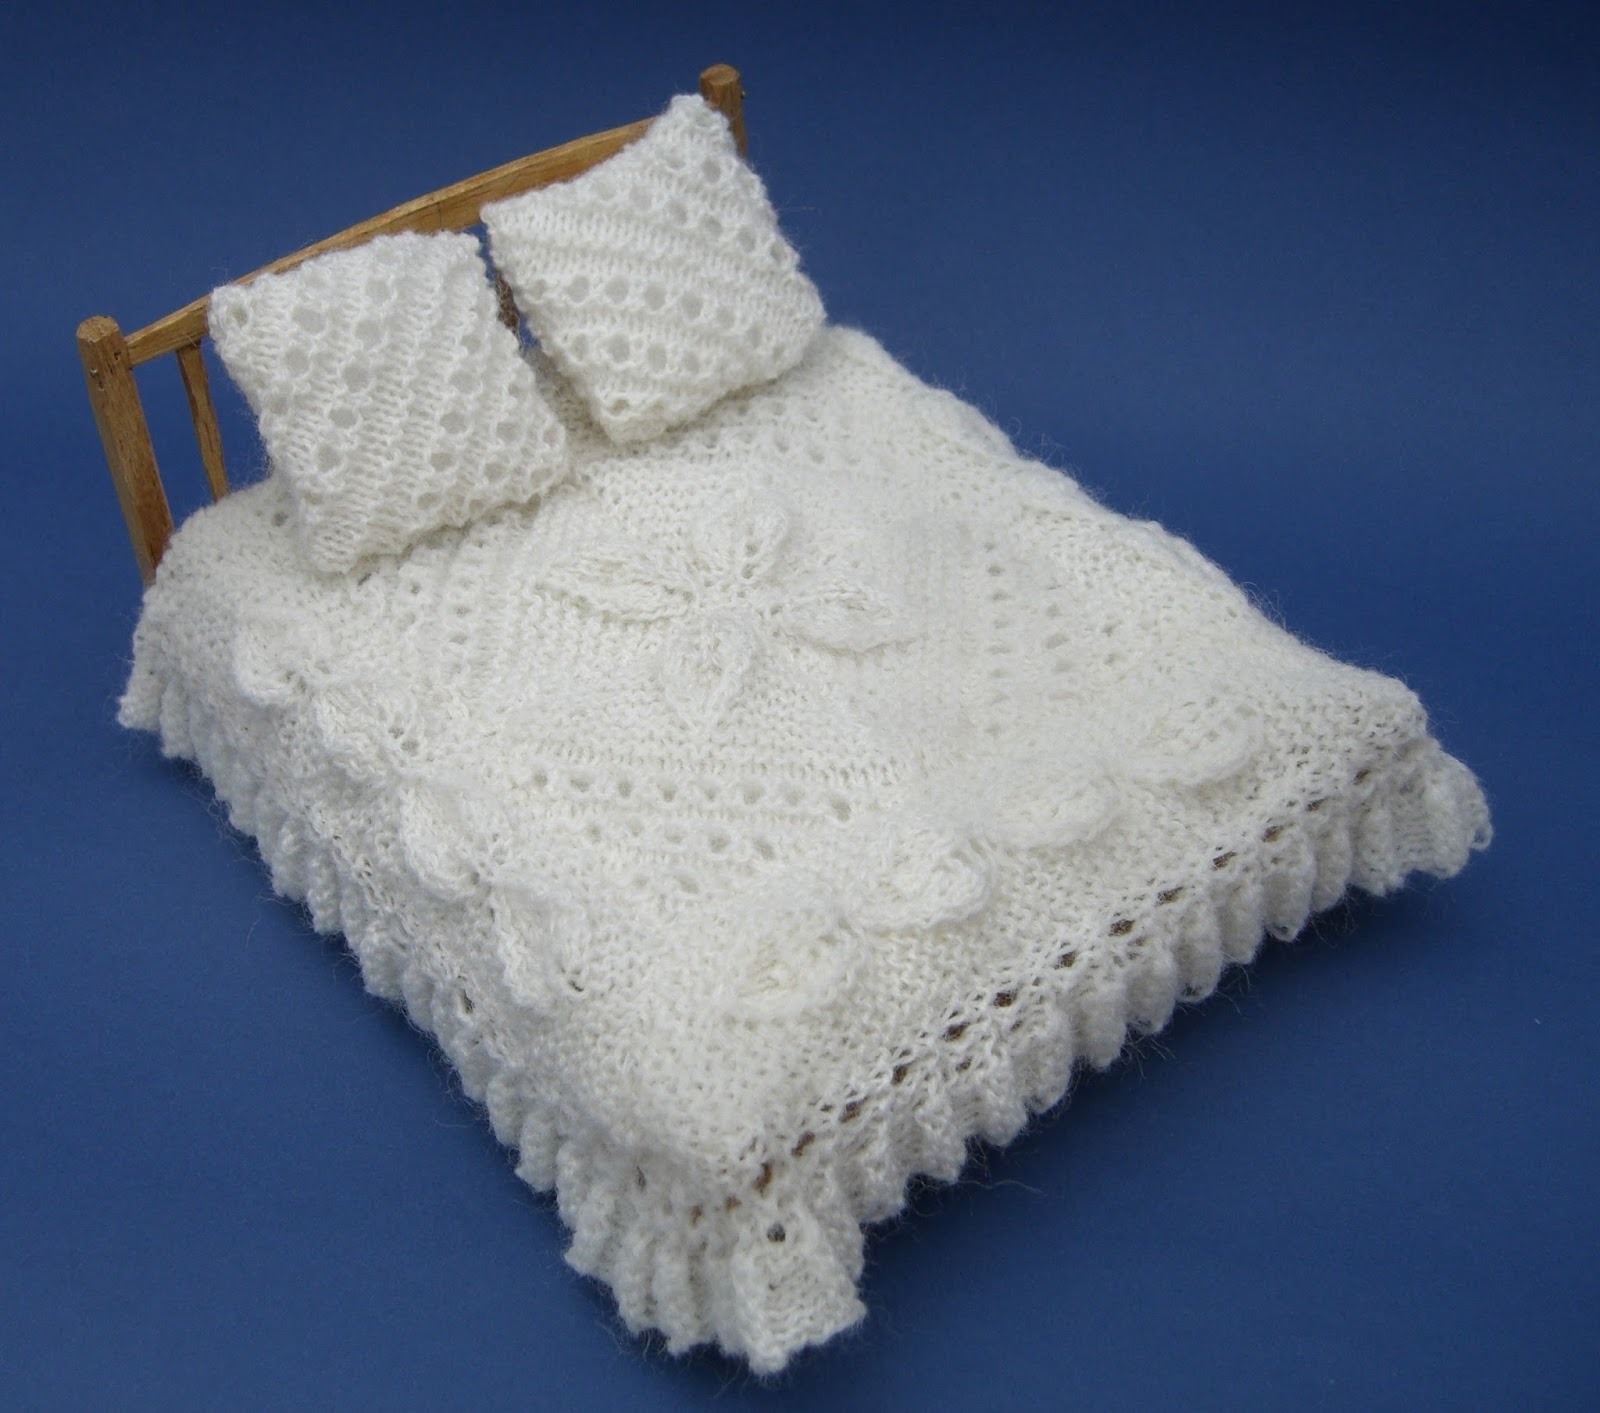 Knitting Patterns For Dolls Bedding : bitstobuy: My favourite dolls house miniature knitting pattern